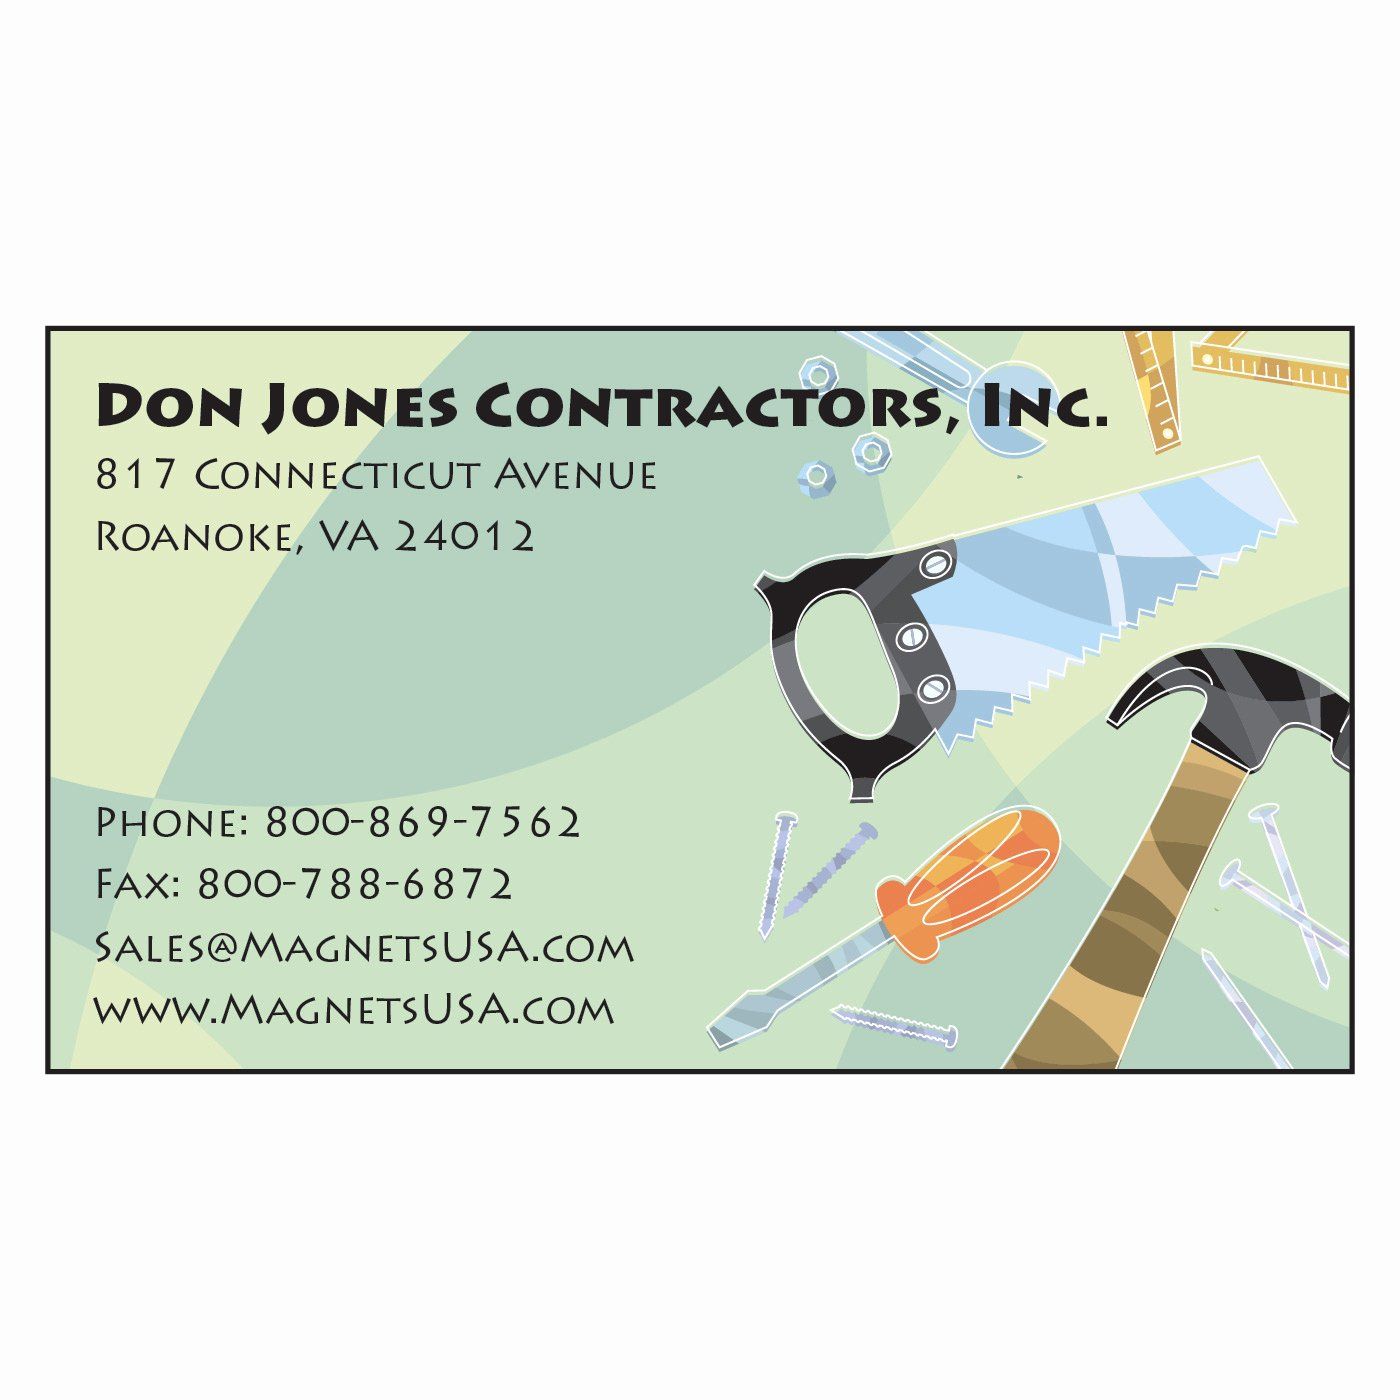 General Contractor Business Cards Unique Card Stock Business Cards